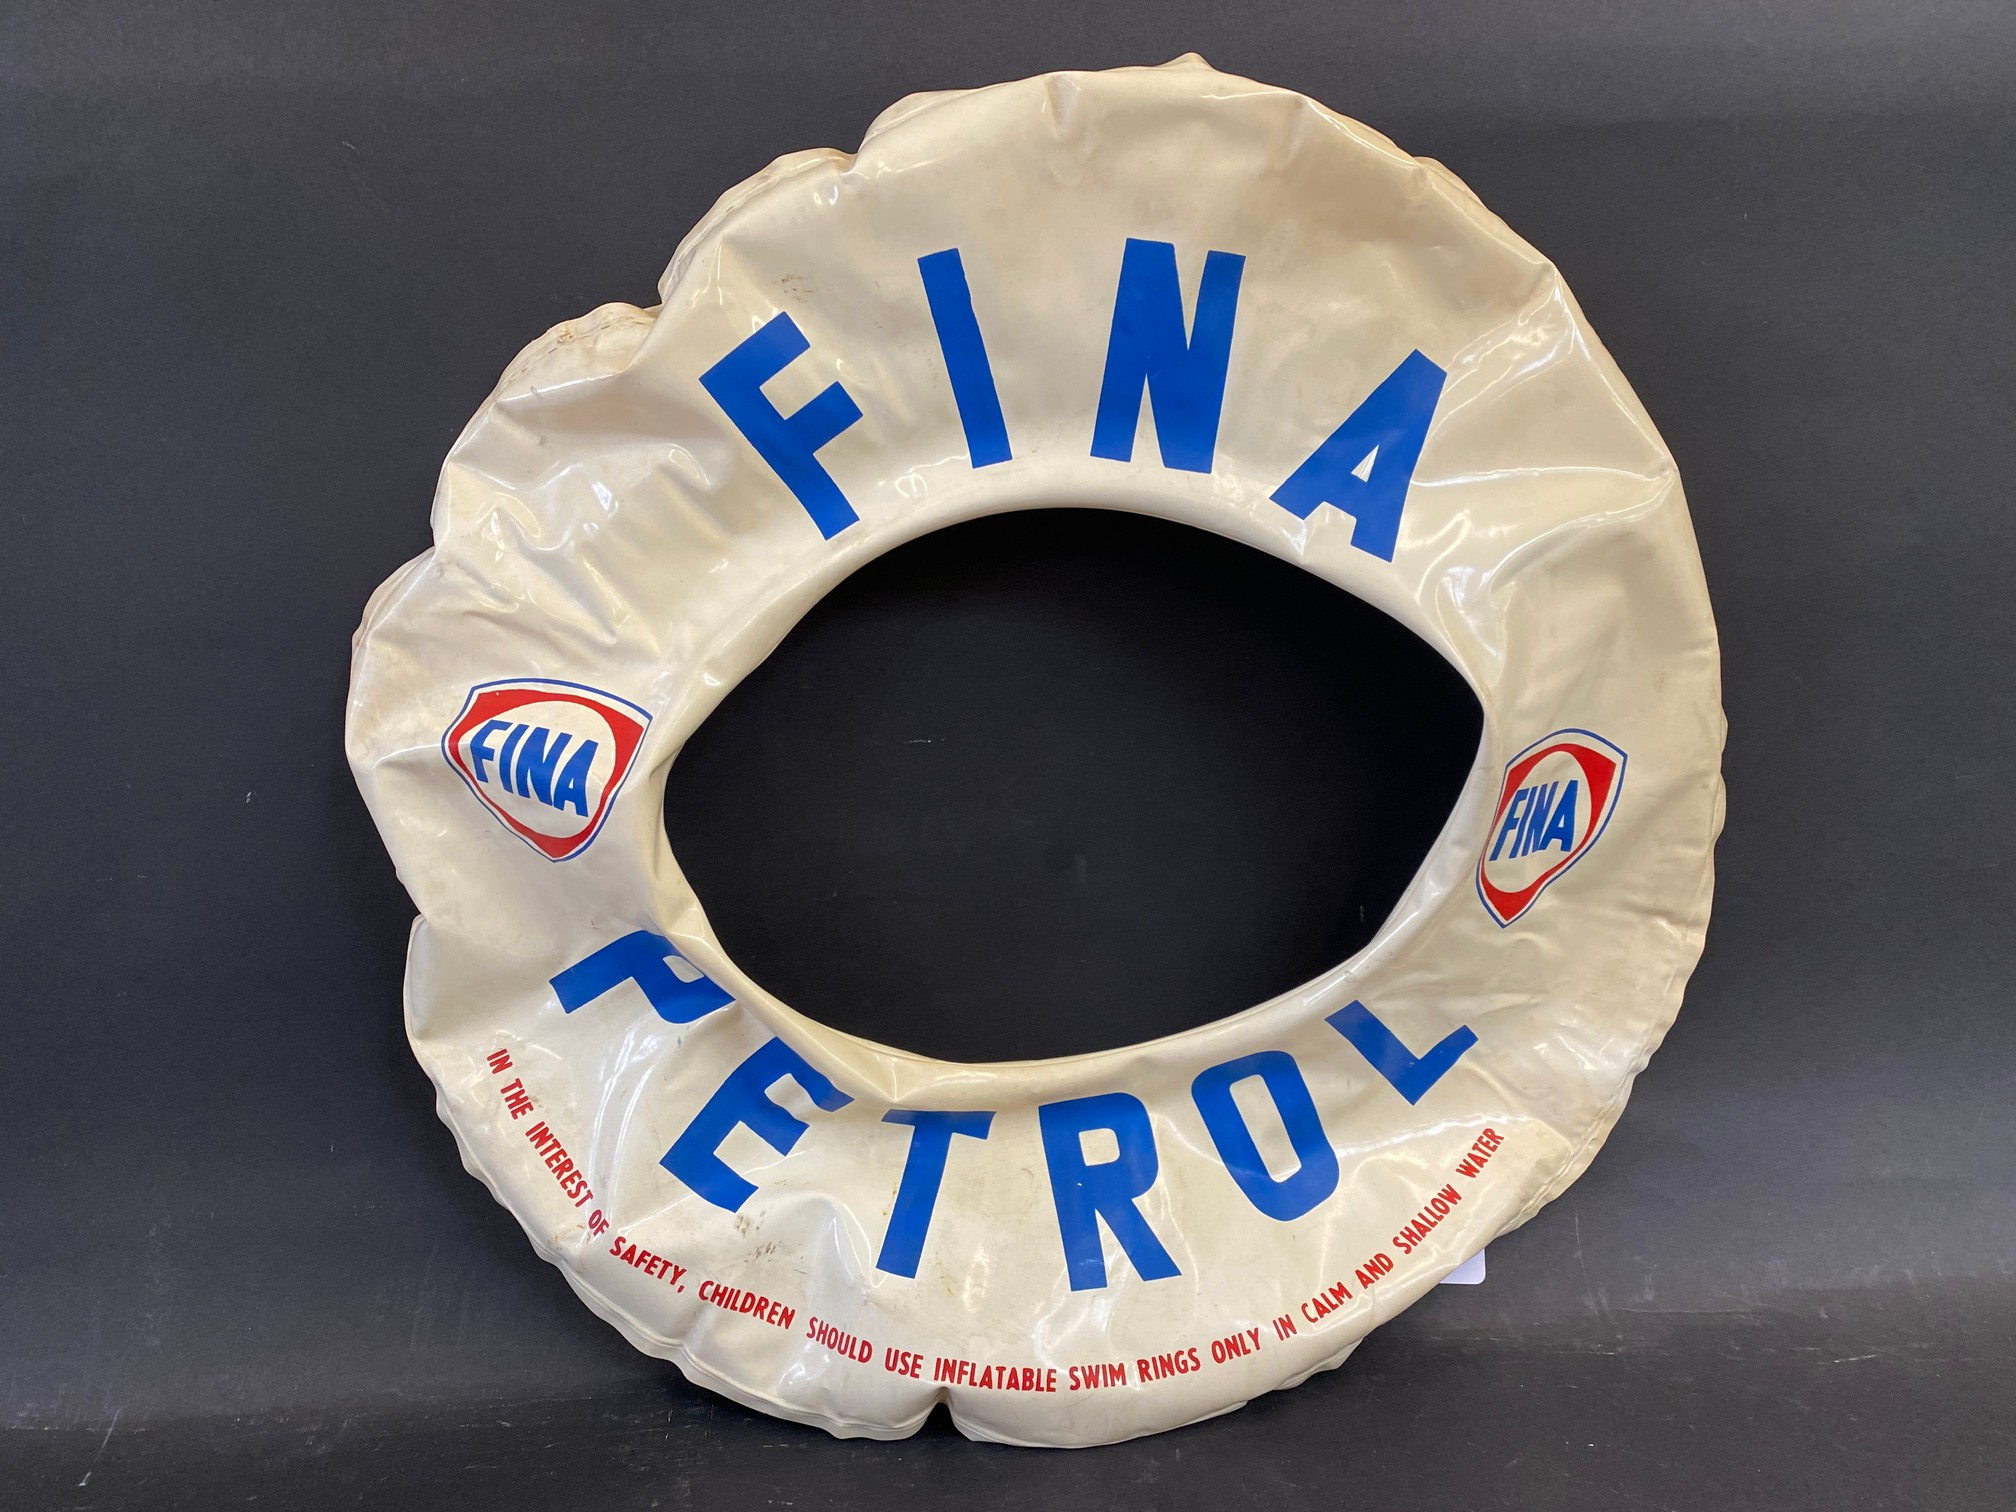 An inflatable swim ring advertising Fina Petrol.